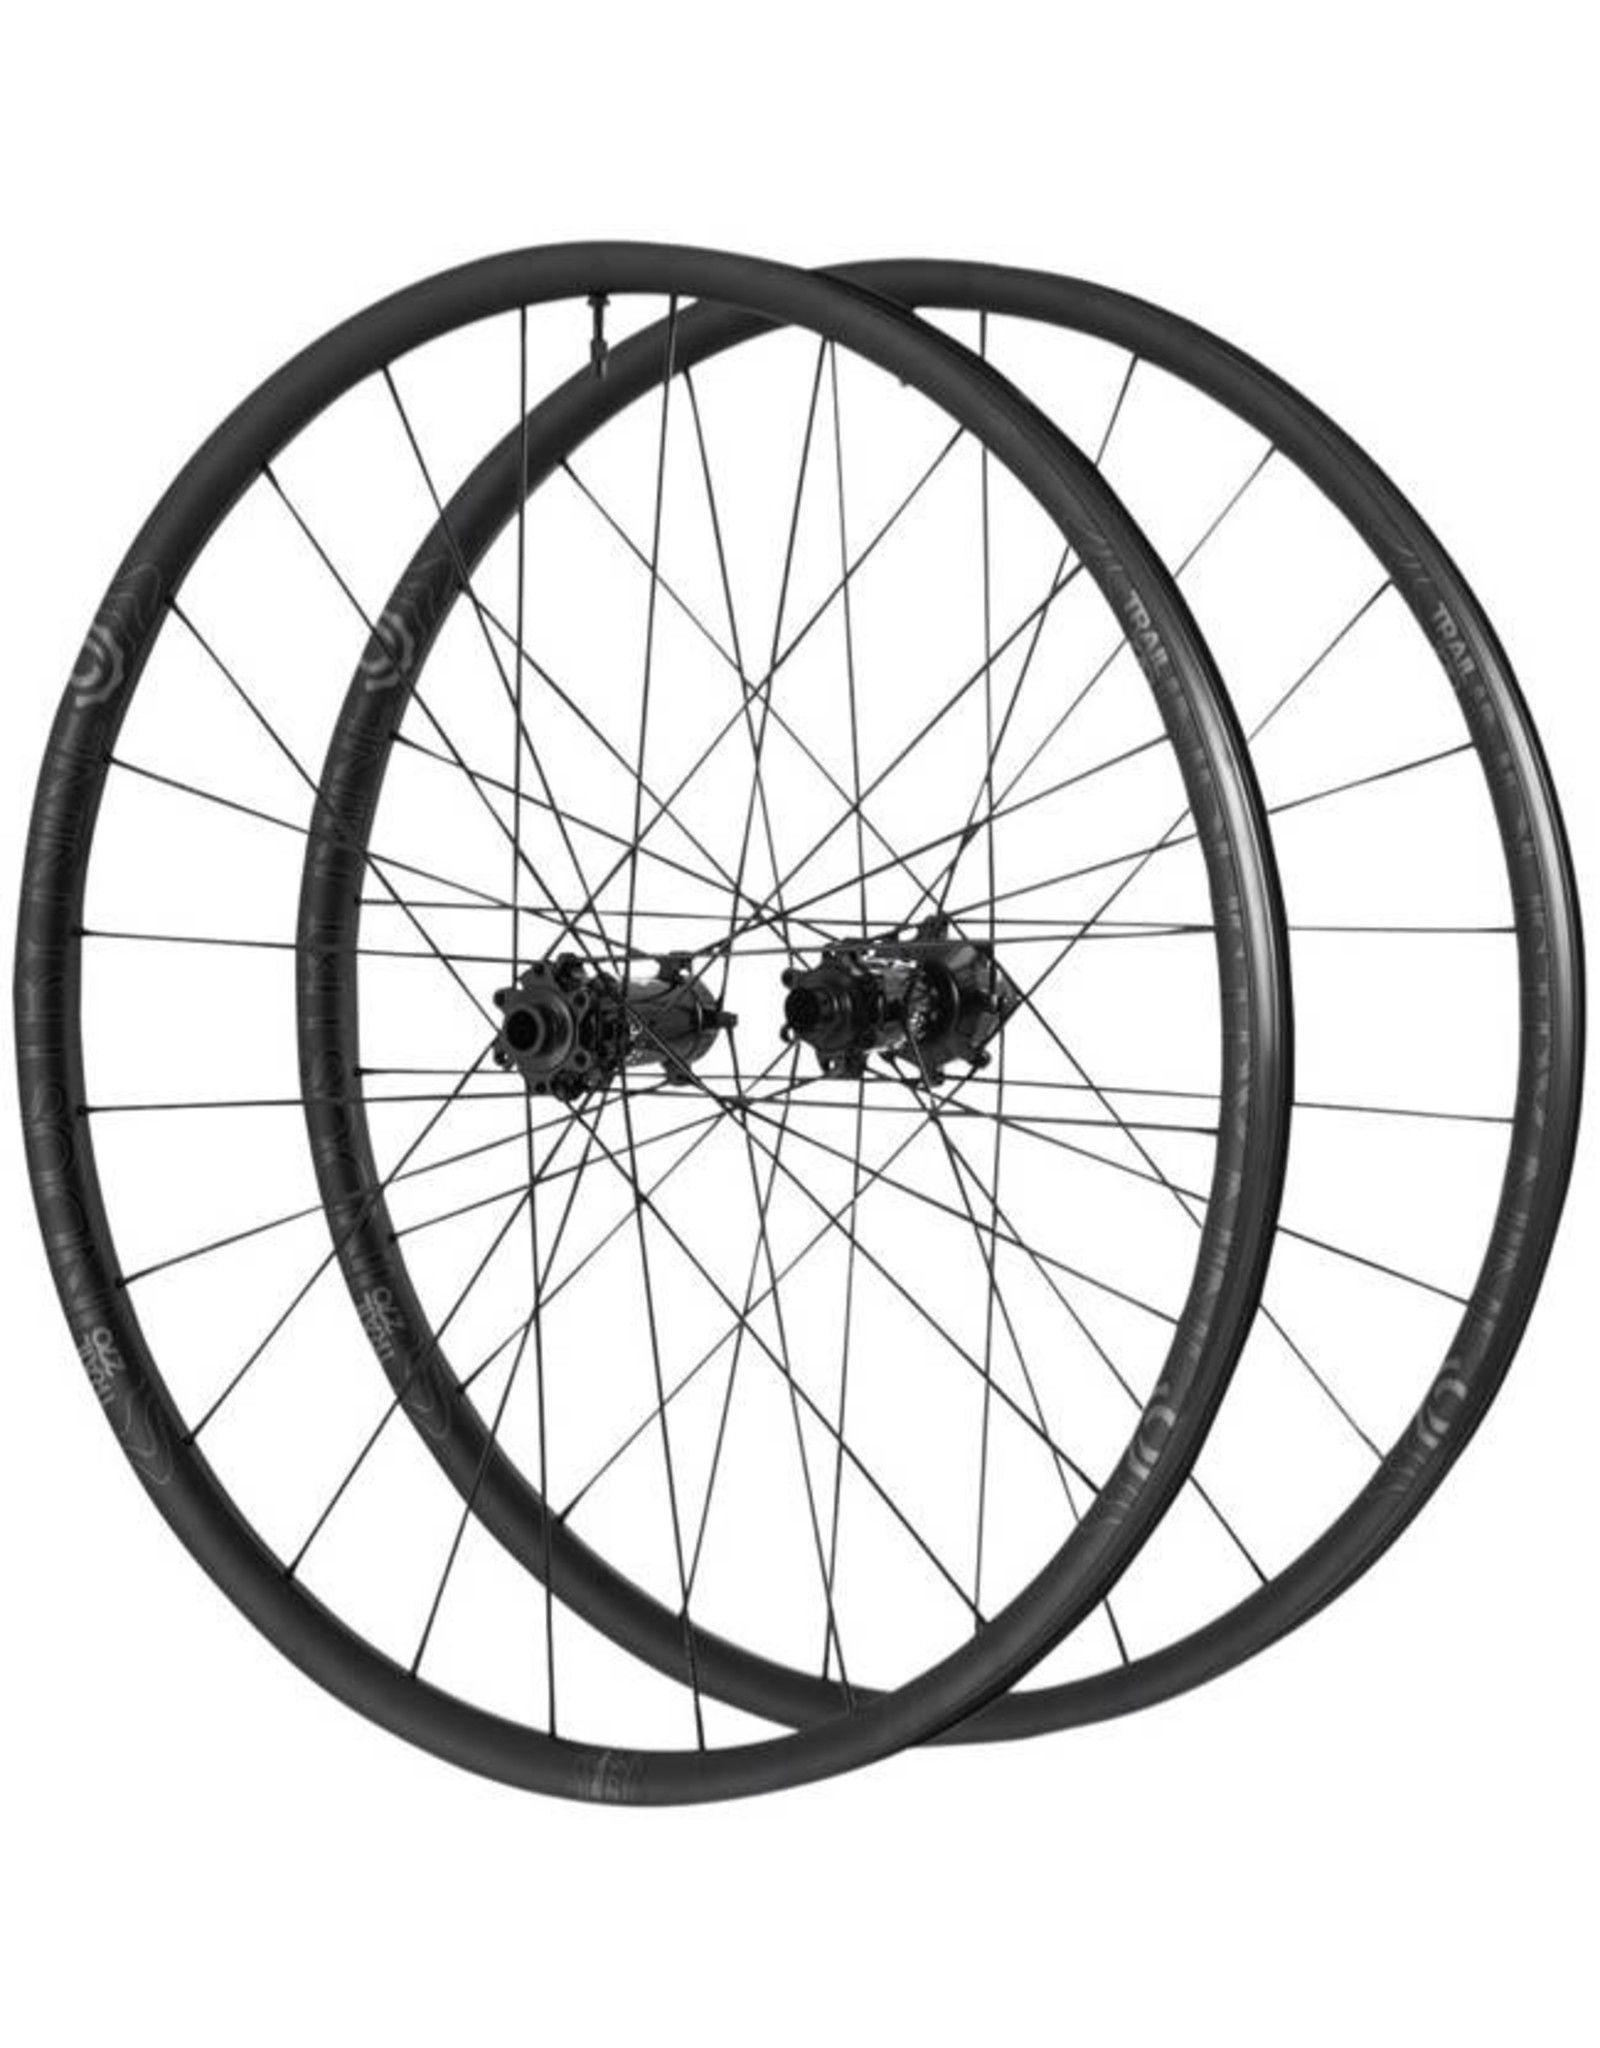 "Industry Nine Industry Nine Trail 270 Wheelset: 27.5"", 24H, 15 x 110mm Boost Front, 12 x 148mm Boost Rear, Shimano Freehub, Black"